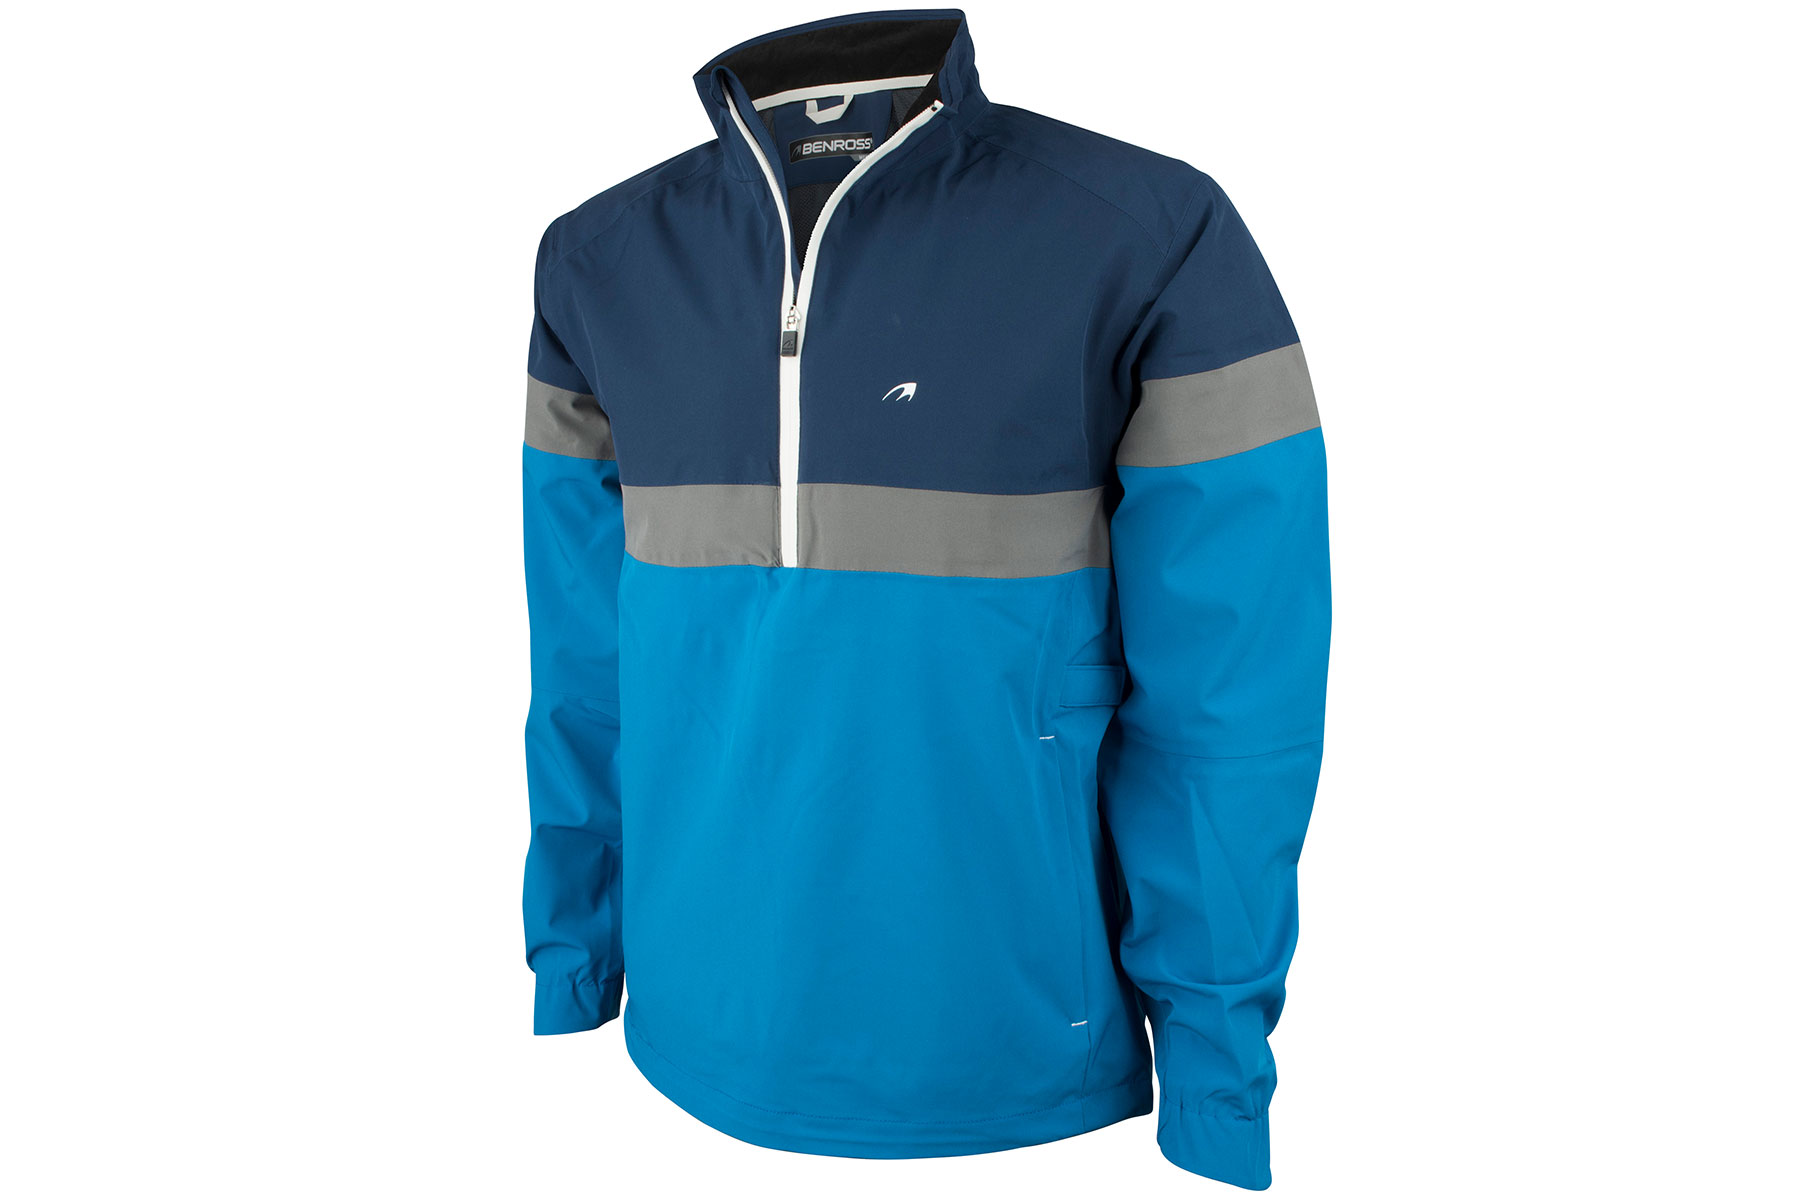 Benross hydro pro 1 4 zip waterproof jacket from american golf for Housse zip collection captur